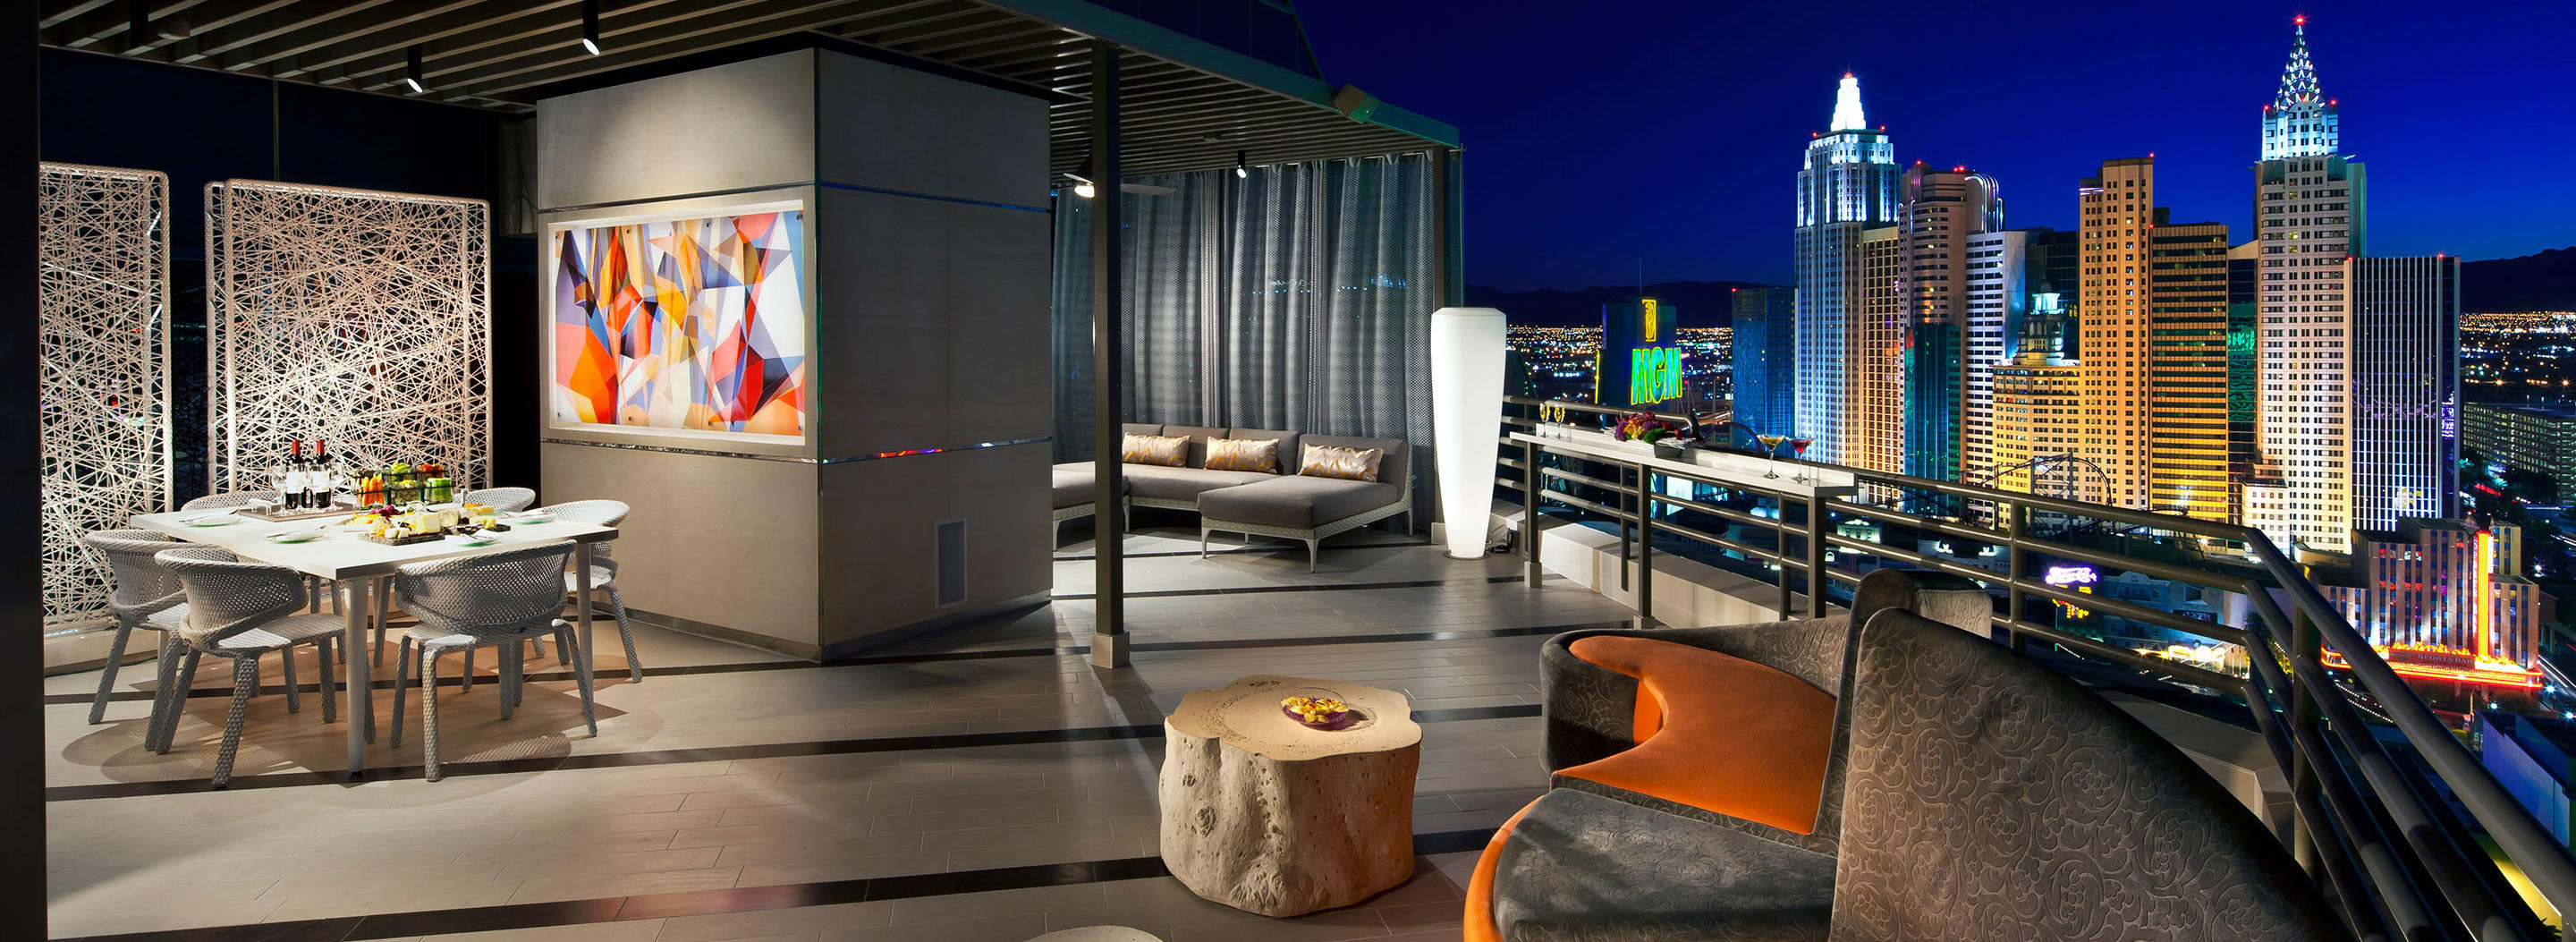 Las Vegas' 12 Most Lavish (and Expensive) Suites